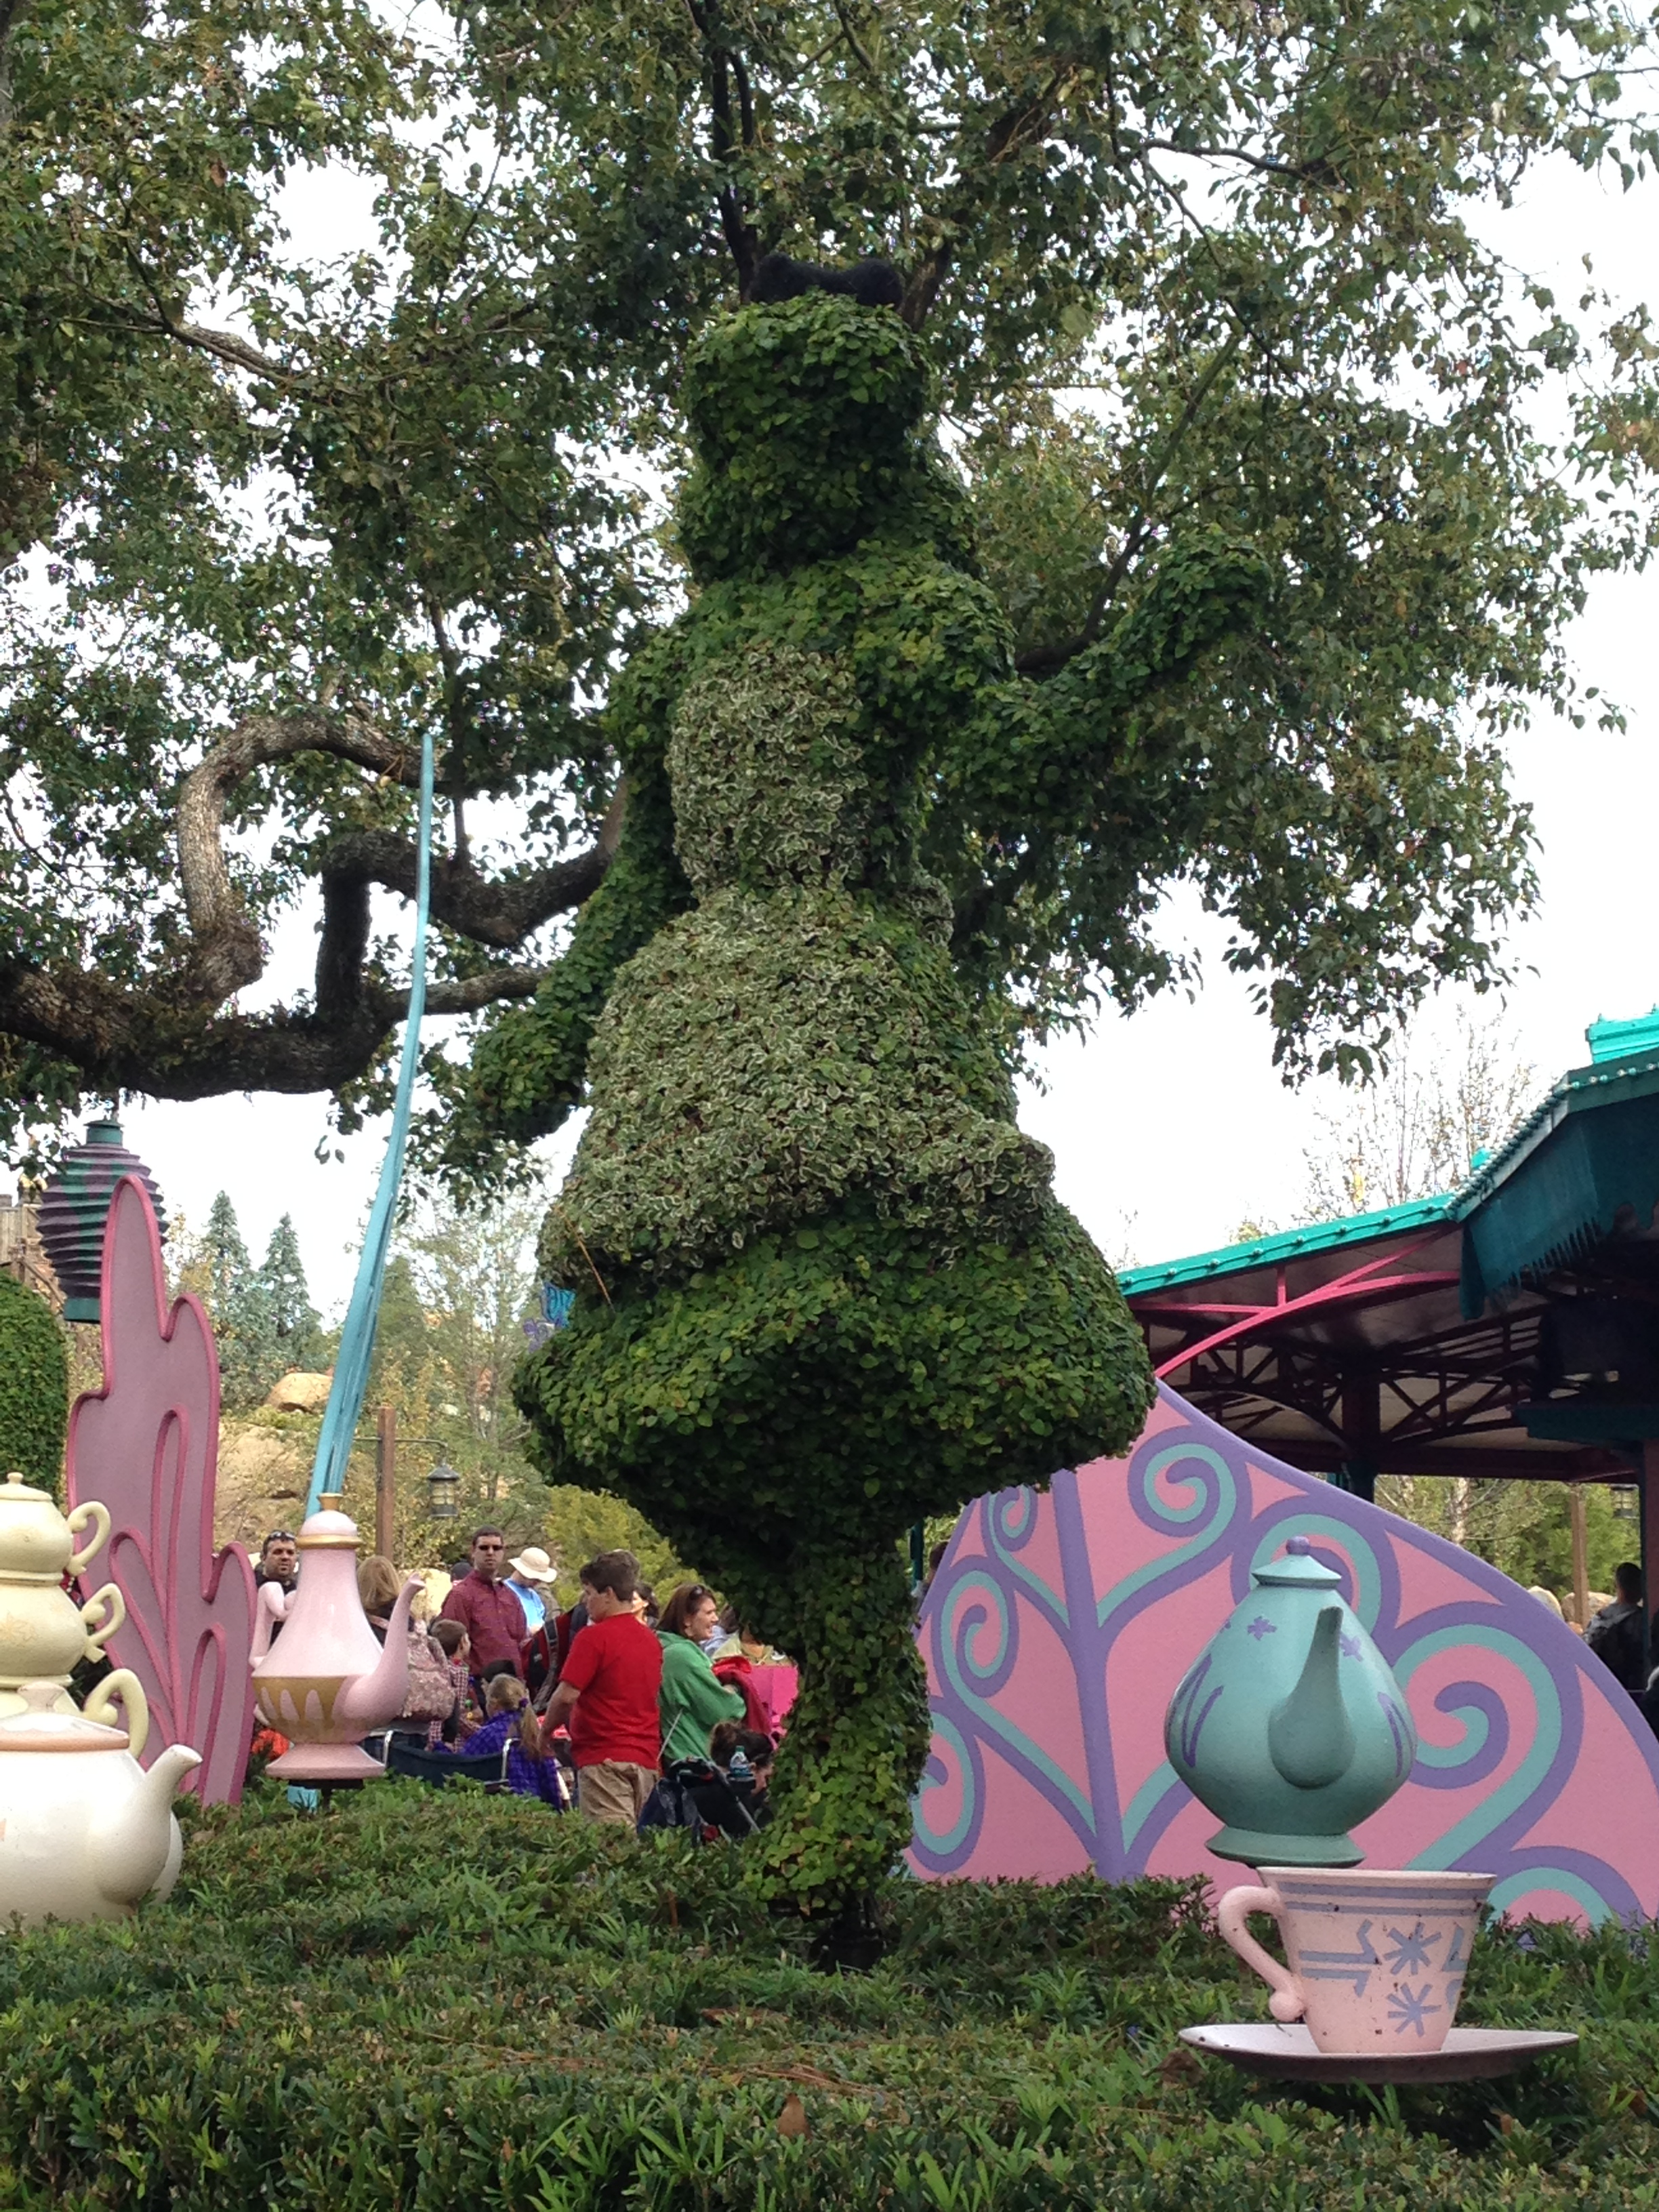 Horticulture & Floriculture Inspired by Disney Park